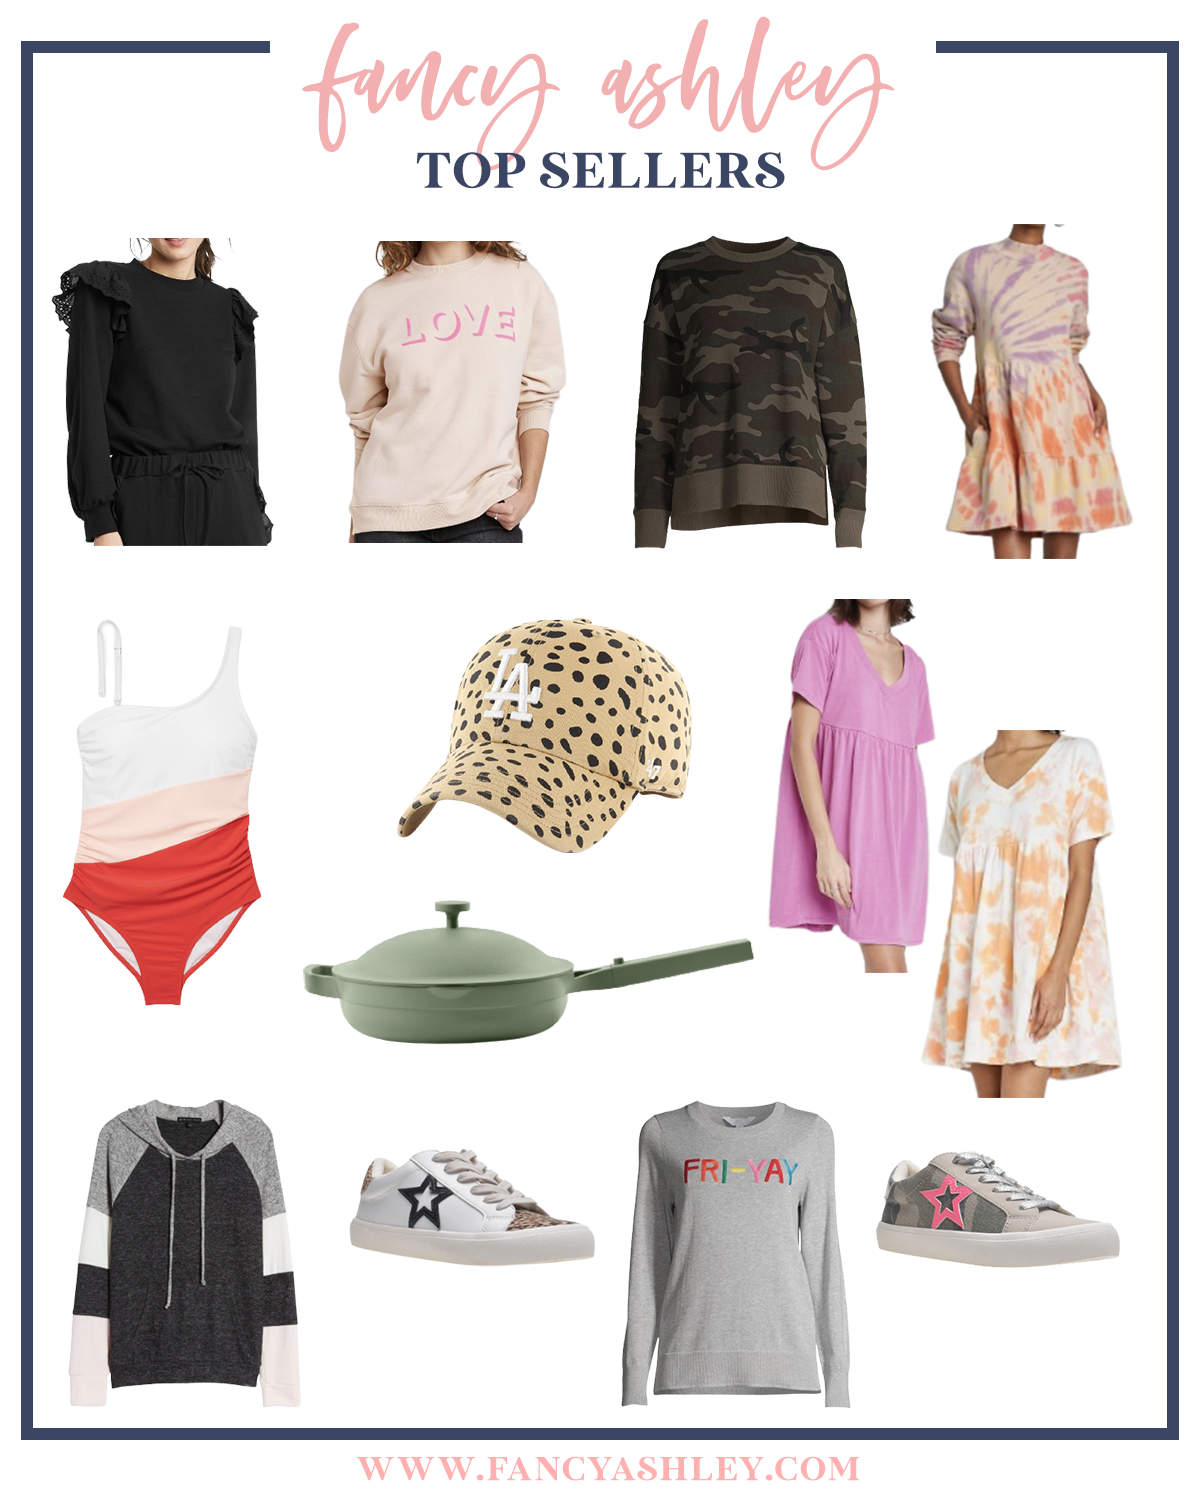 Top Sellers by popular Houston life and style blog, Fancy Ashley: collage image of a black ruffle shoulder sweater, pink love sweatshirt, camo sweatshirt, tie dye dress, pink white and red strip one piece swimsuit, leopard print ball cap, pink and orange tie dye baby doll dresses, gold and black star print sneaker, camo print and pink star sneaker, Fri-Yay grey sweater, grey black and white hoodie, and green Always pan.